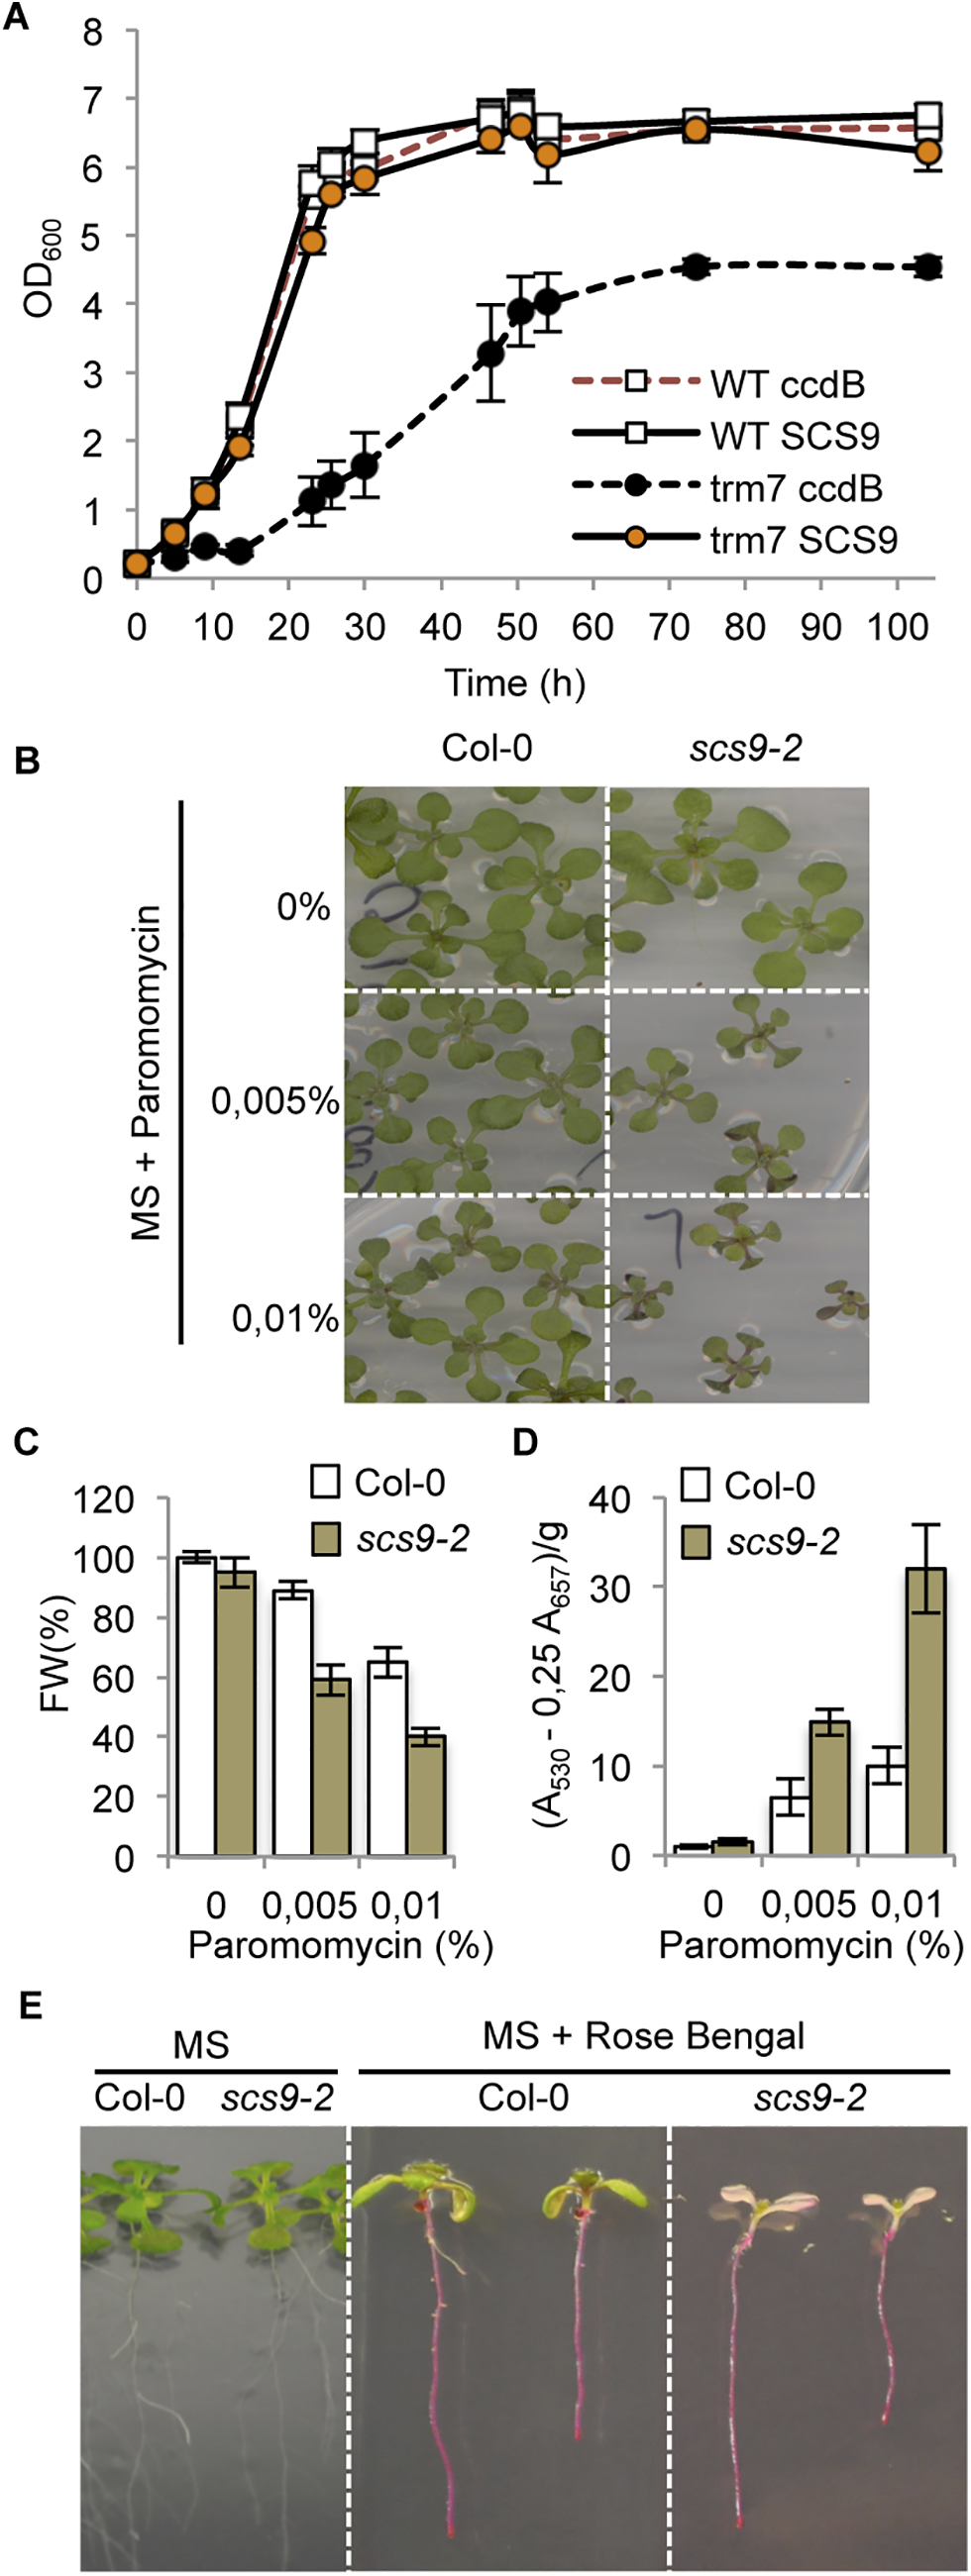 Complementation of the <i>Saccharomyces cerevisiae trm7</i>Δ strain with Arabidopsis <i>SCS9</i> cDNA, and hypersensitivity of <i>scs9-2</i> seedlings to paramomycin and rose bengal.